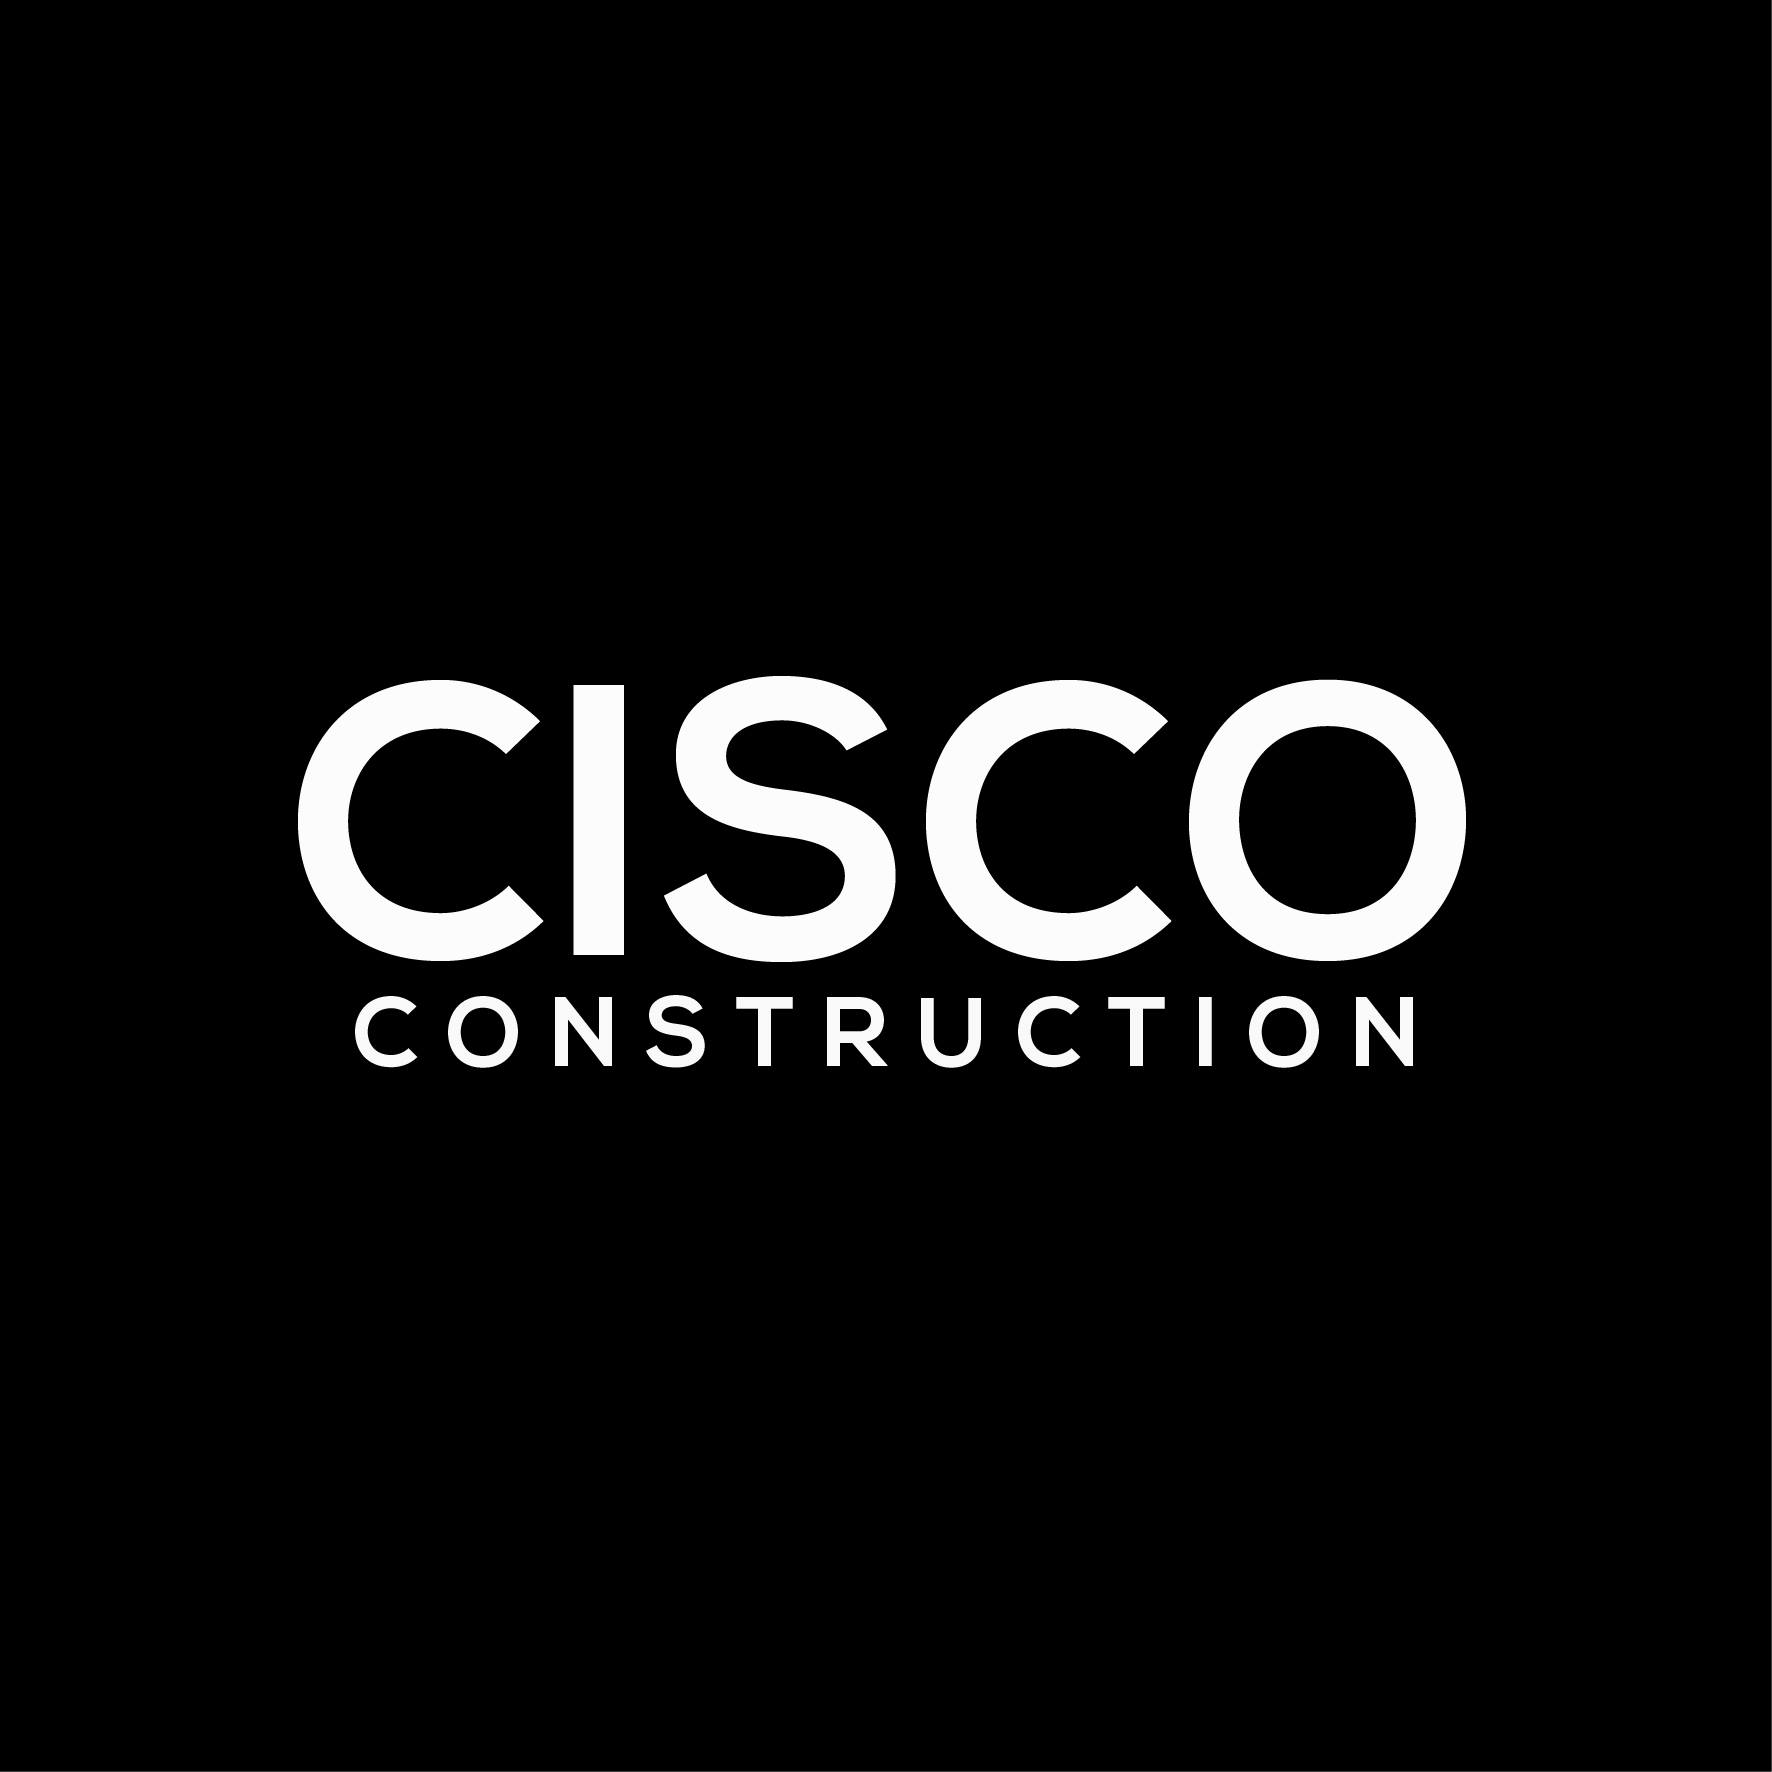 Cisco Construction Inc - Tarzana, CA 91356 - (818)200-0224 | ShowMeLocal.com